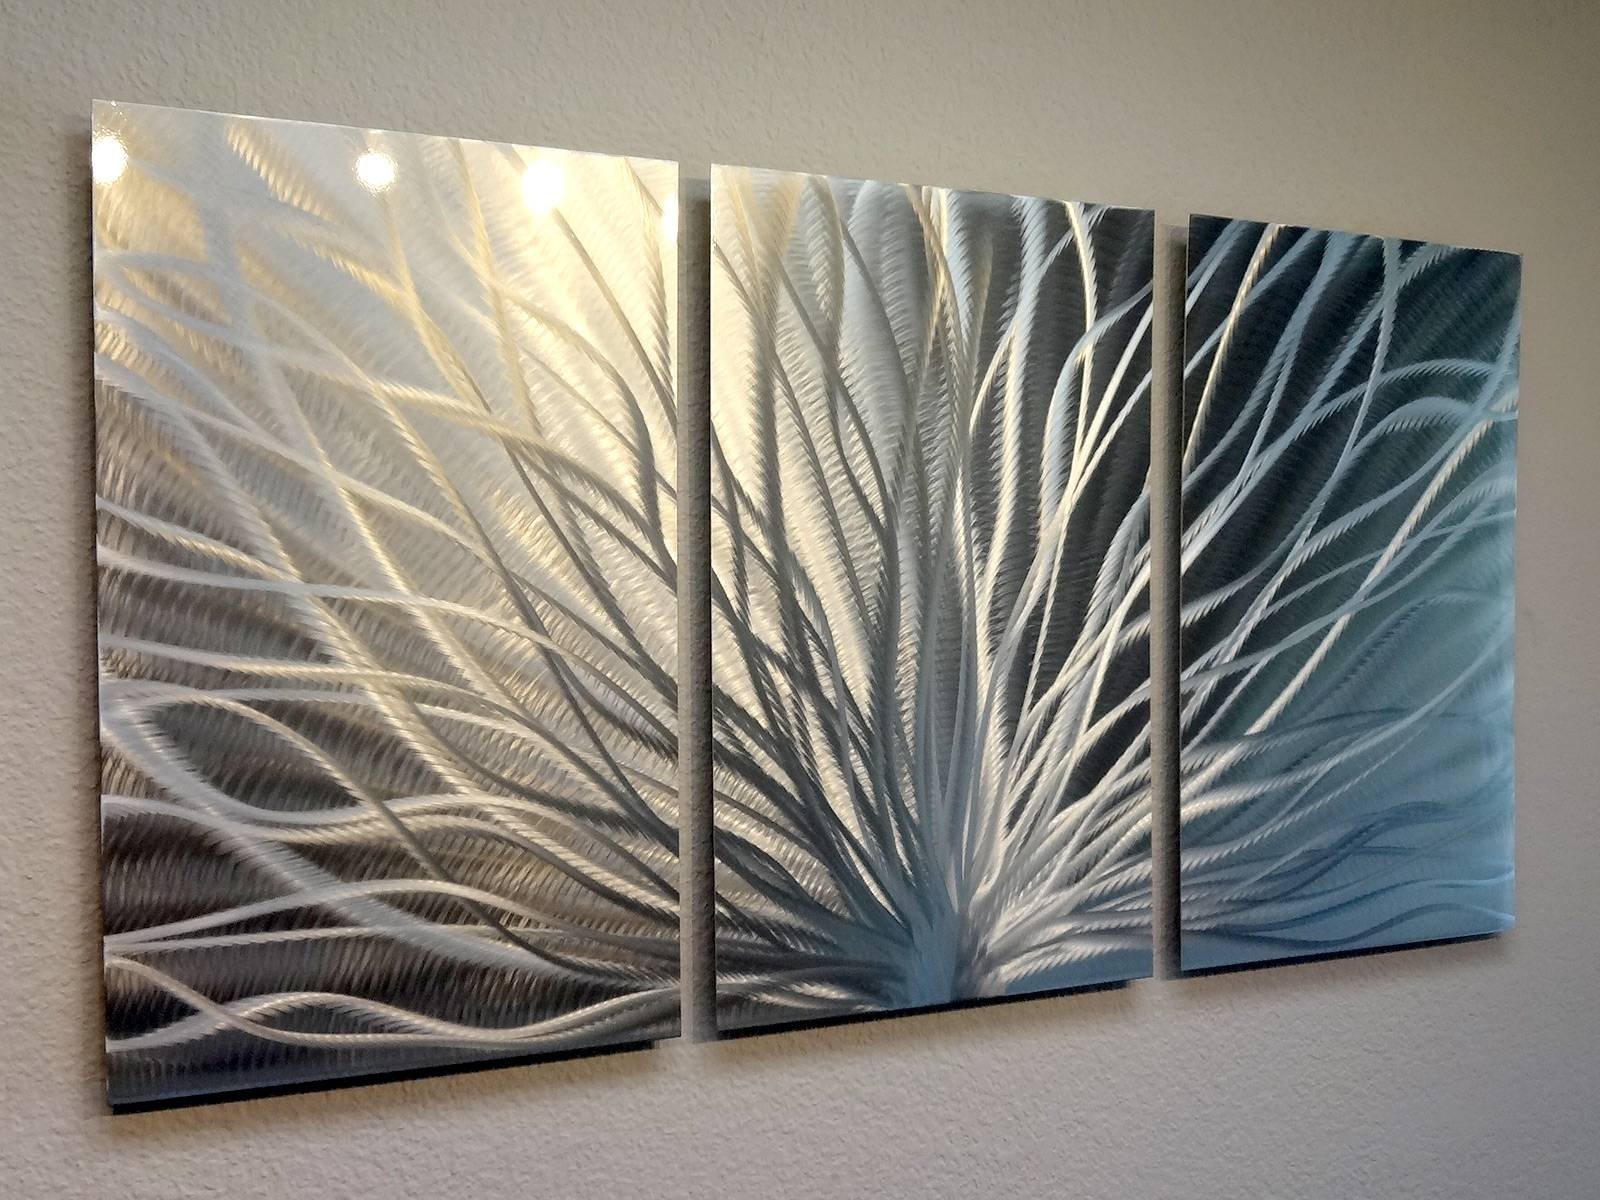 Radiance – 3 Panel Metal Wall Art Abstract Contemporary Modern With Regard To Most Recently Released Three Panel Wall Art (View 3 of 20)